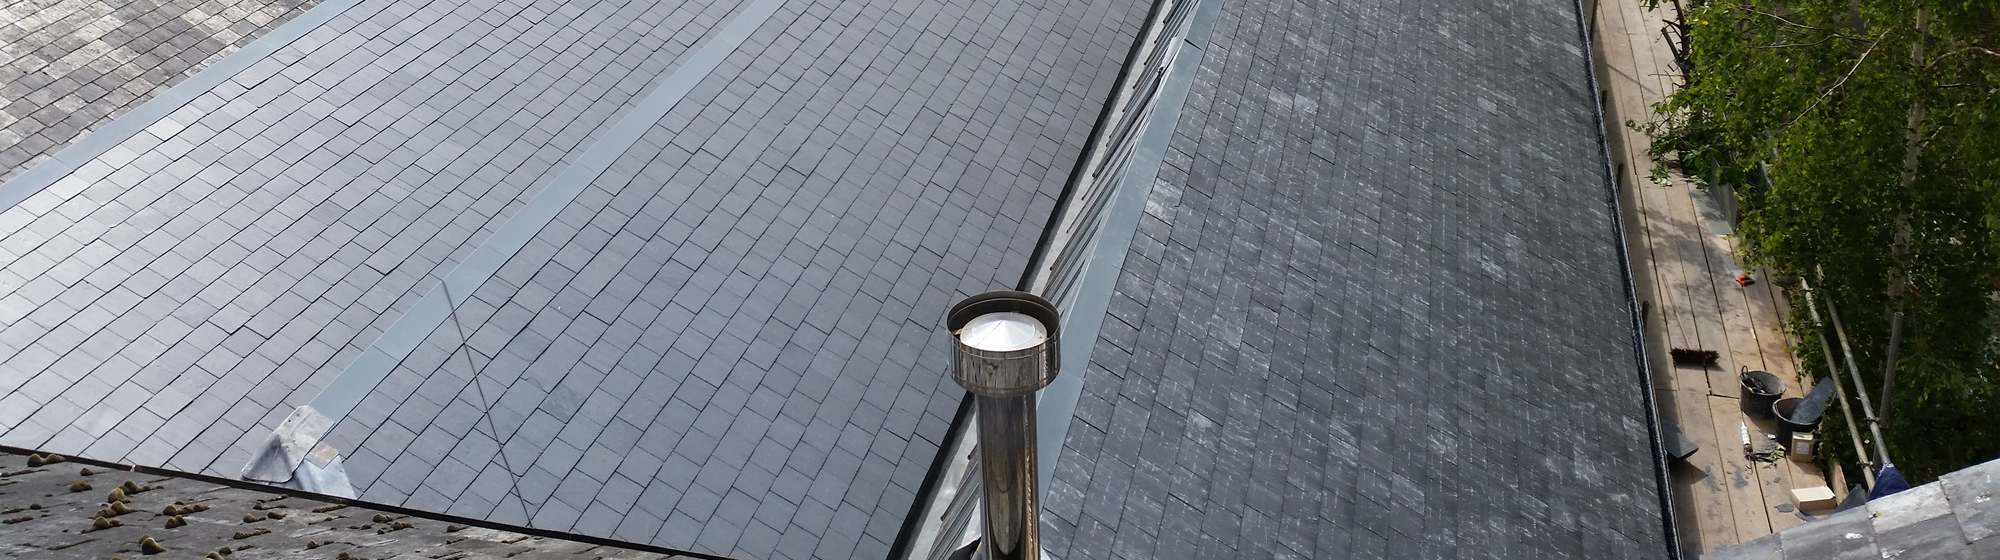 Home Roof - Banner Image